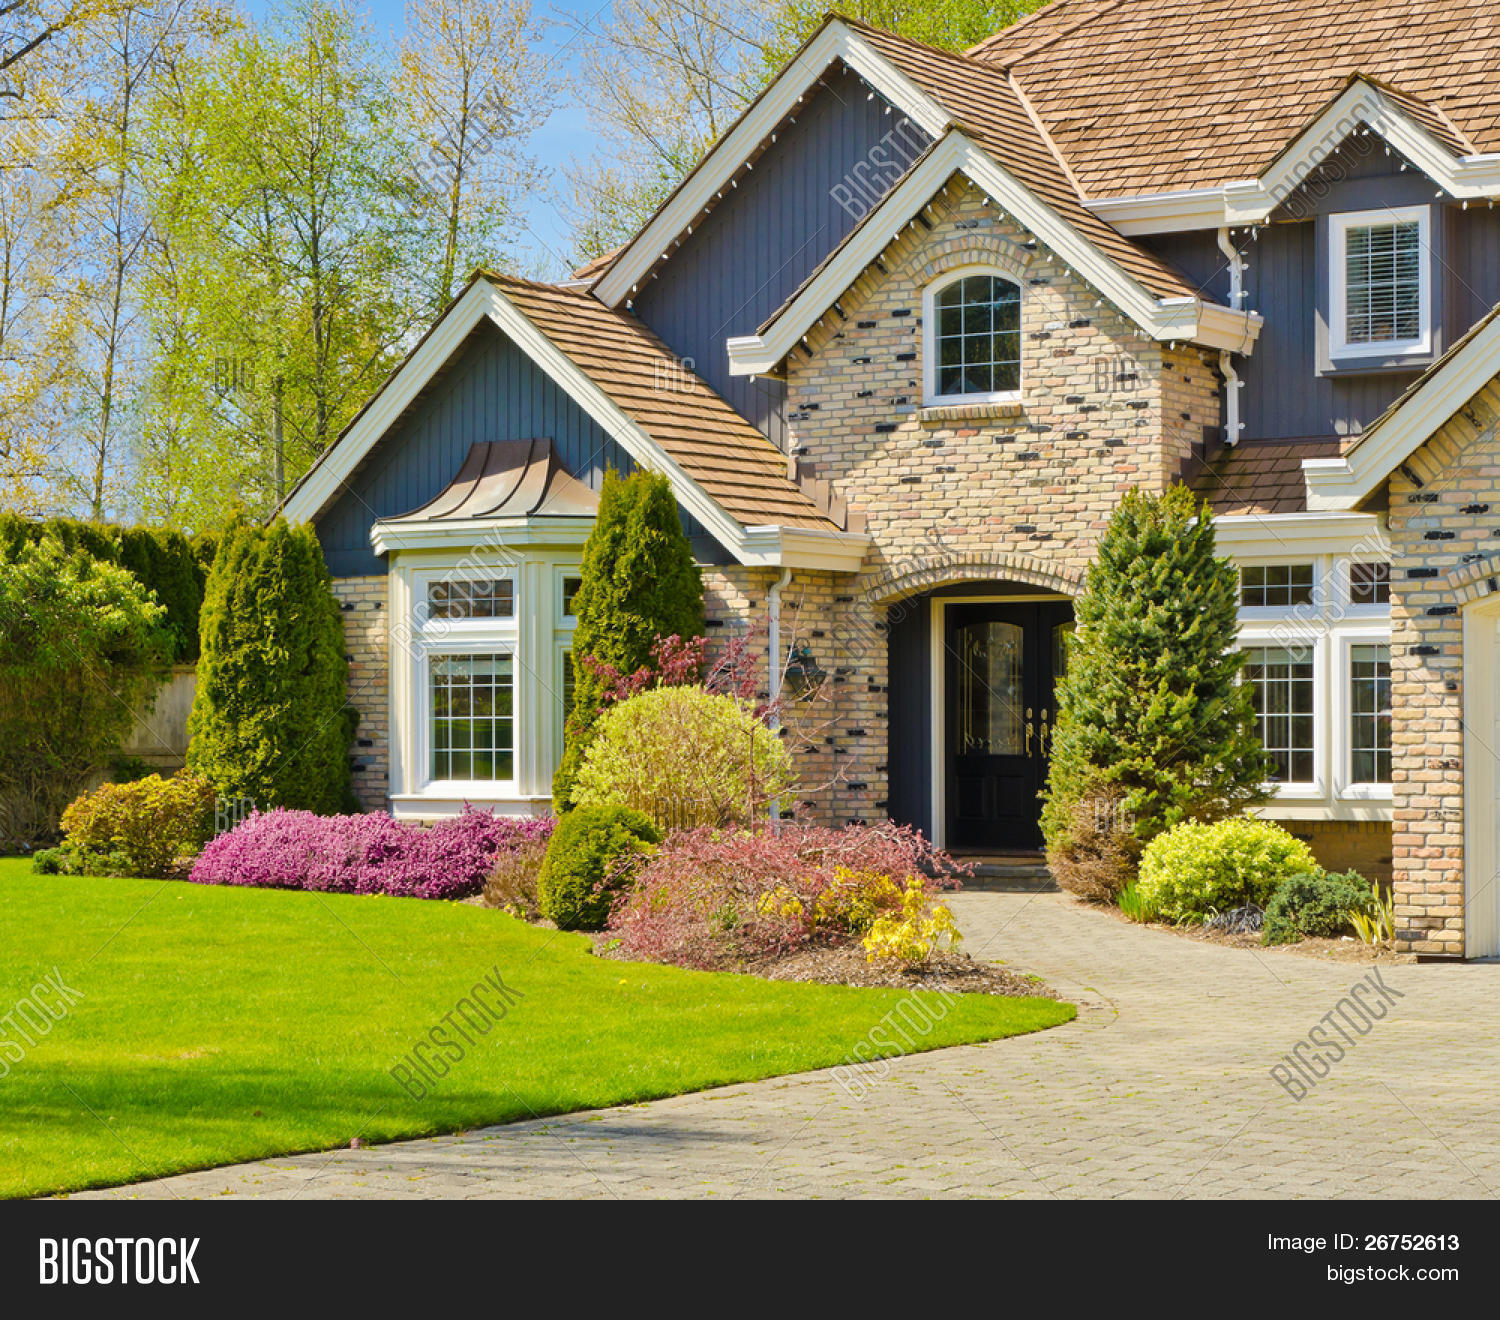 Fragment nice house vancouver image photo bigstock for Nice house images